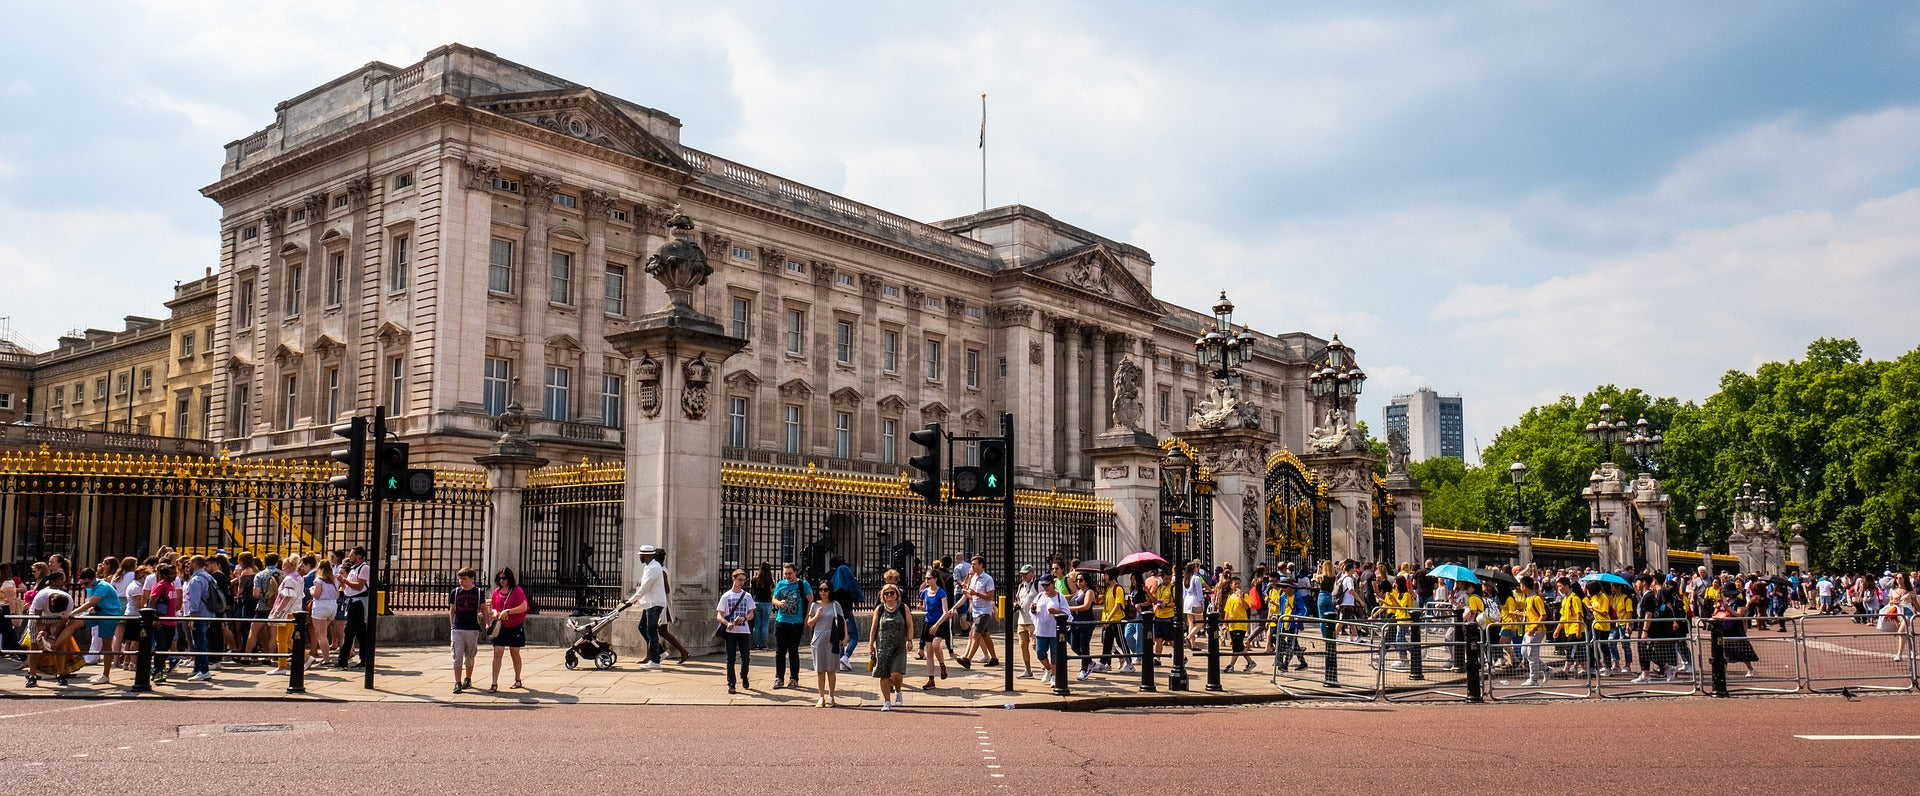 Inspirational People for Inspirational Times – Her Majesty Queen Elizabeth II - Buckingham Palace, none too shabby for your average 387 up, 388 down...